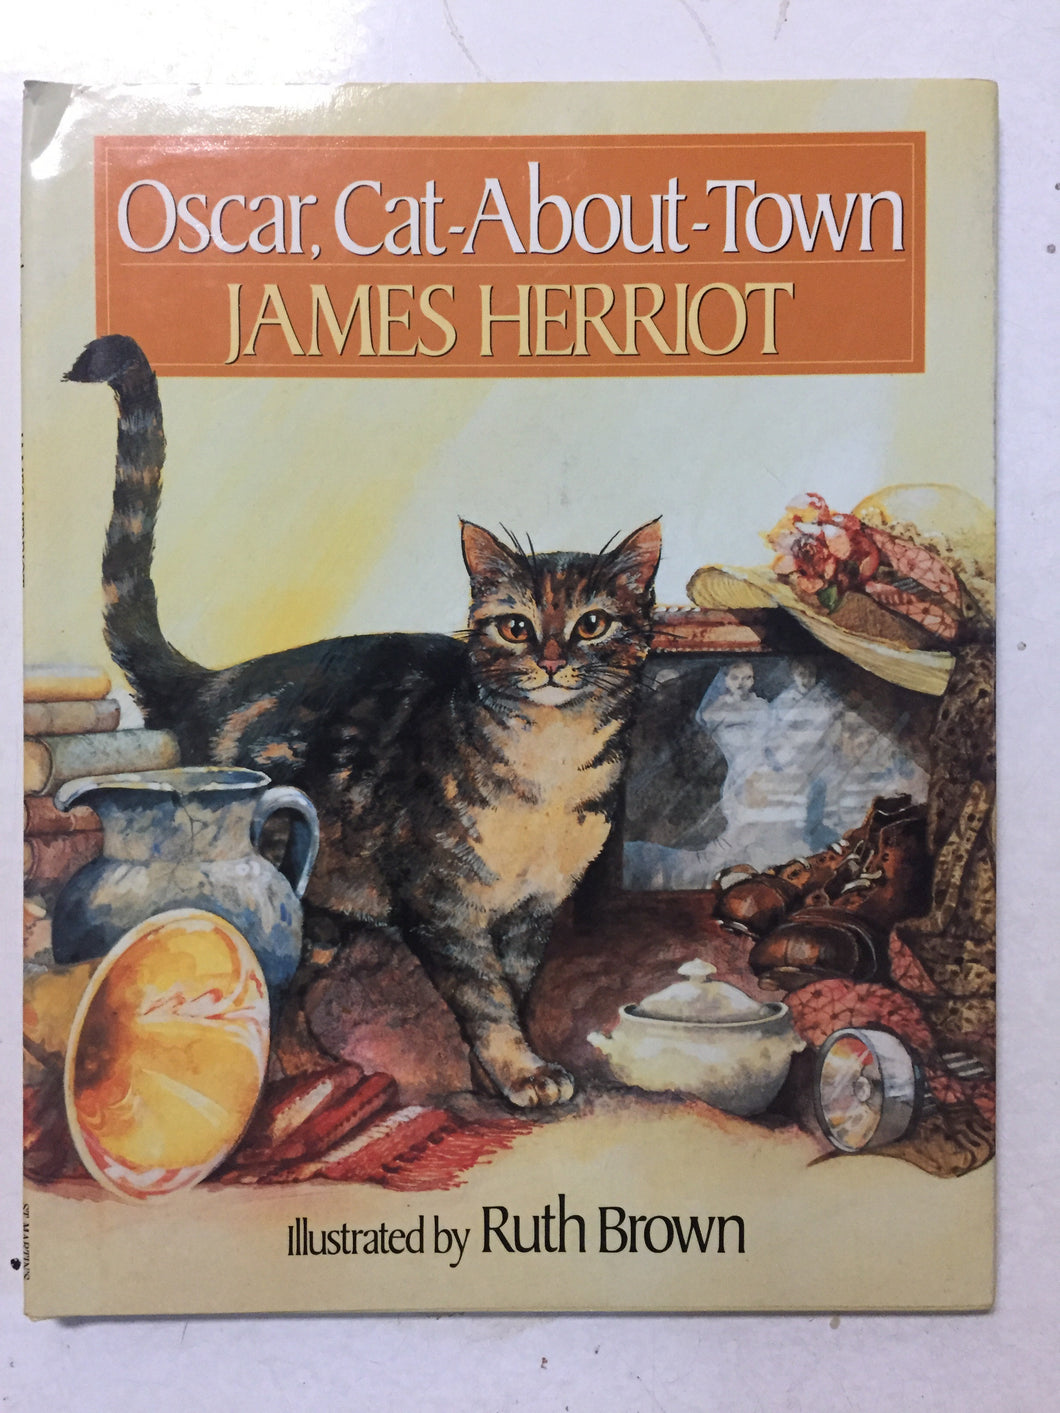 Oscar, Cat-About-Town - Slickcatbooks